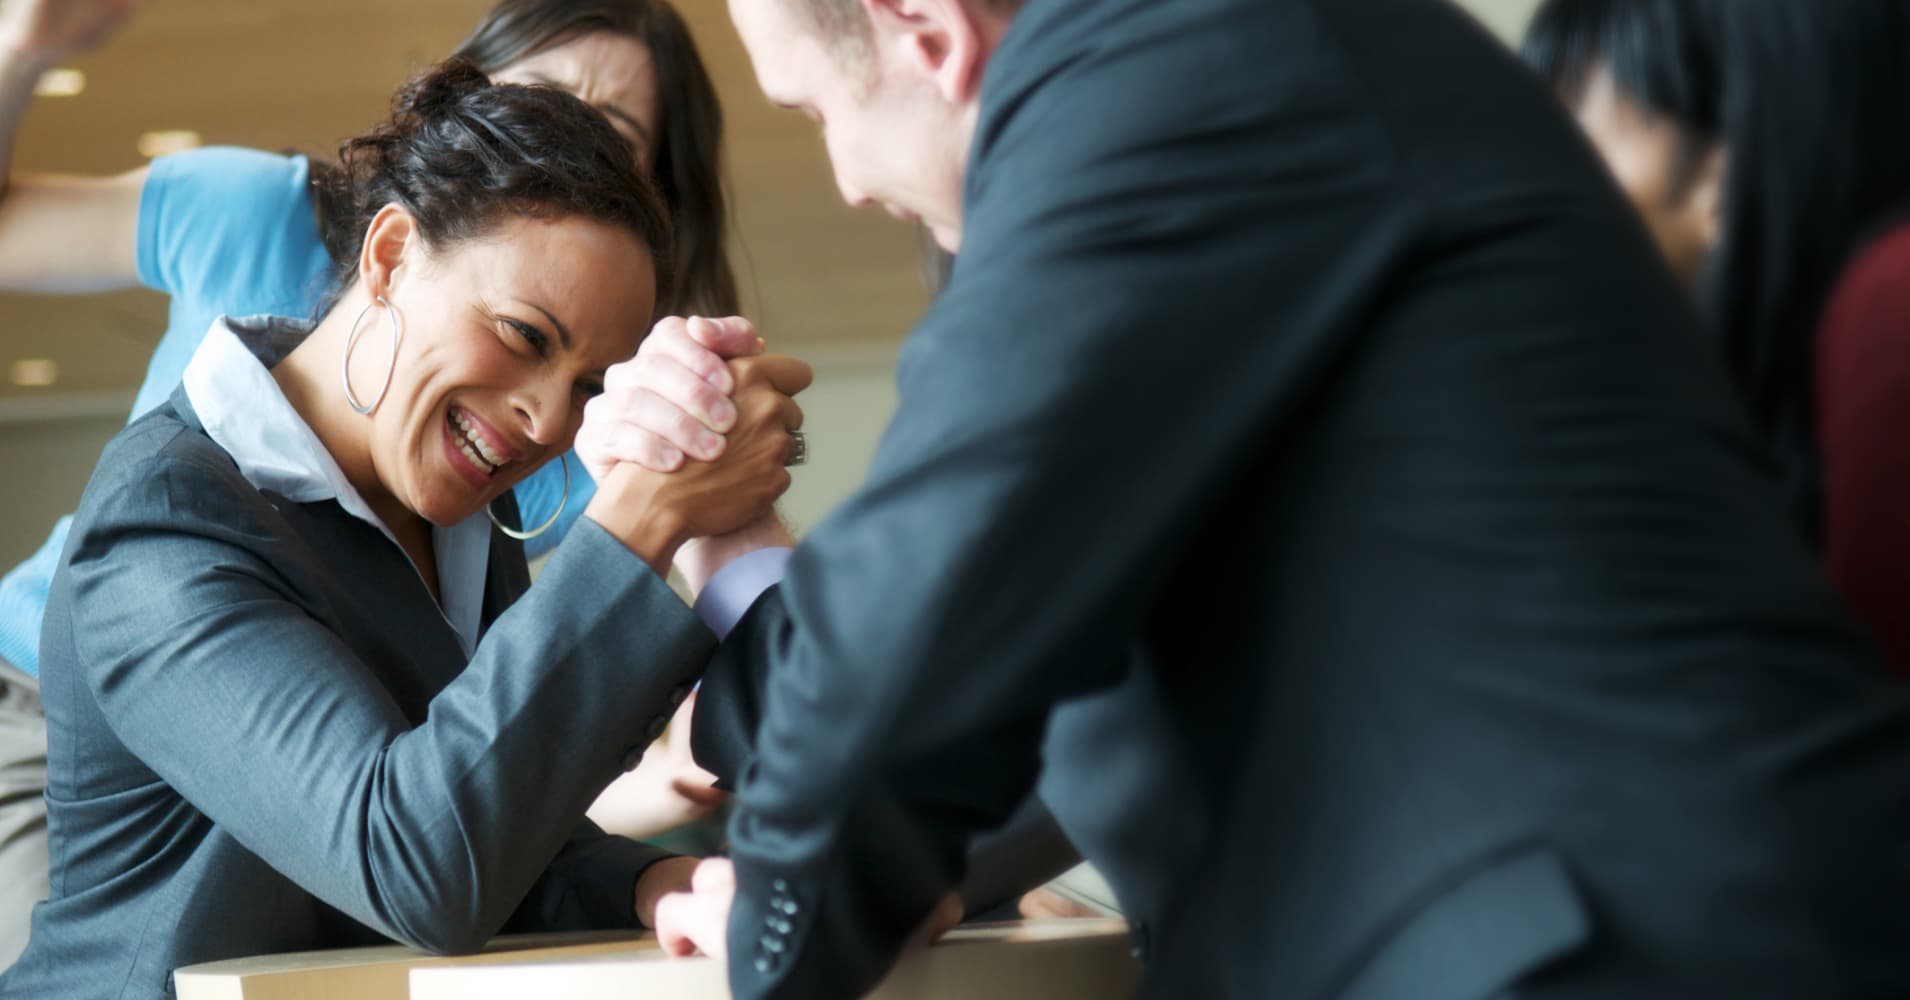 Business professionals arm wrestling in the office